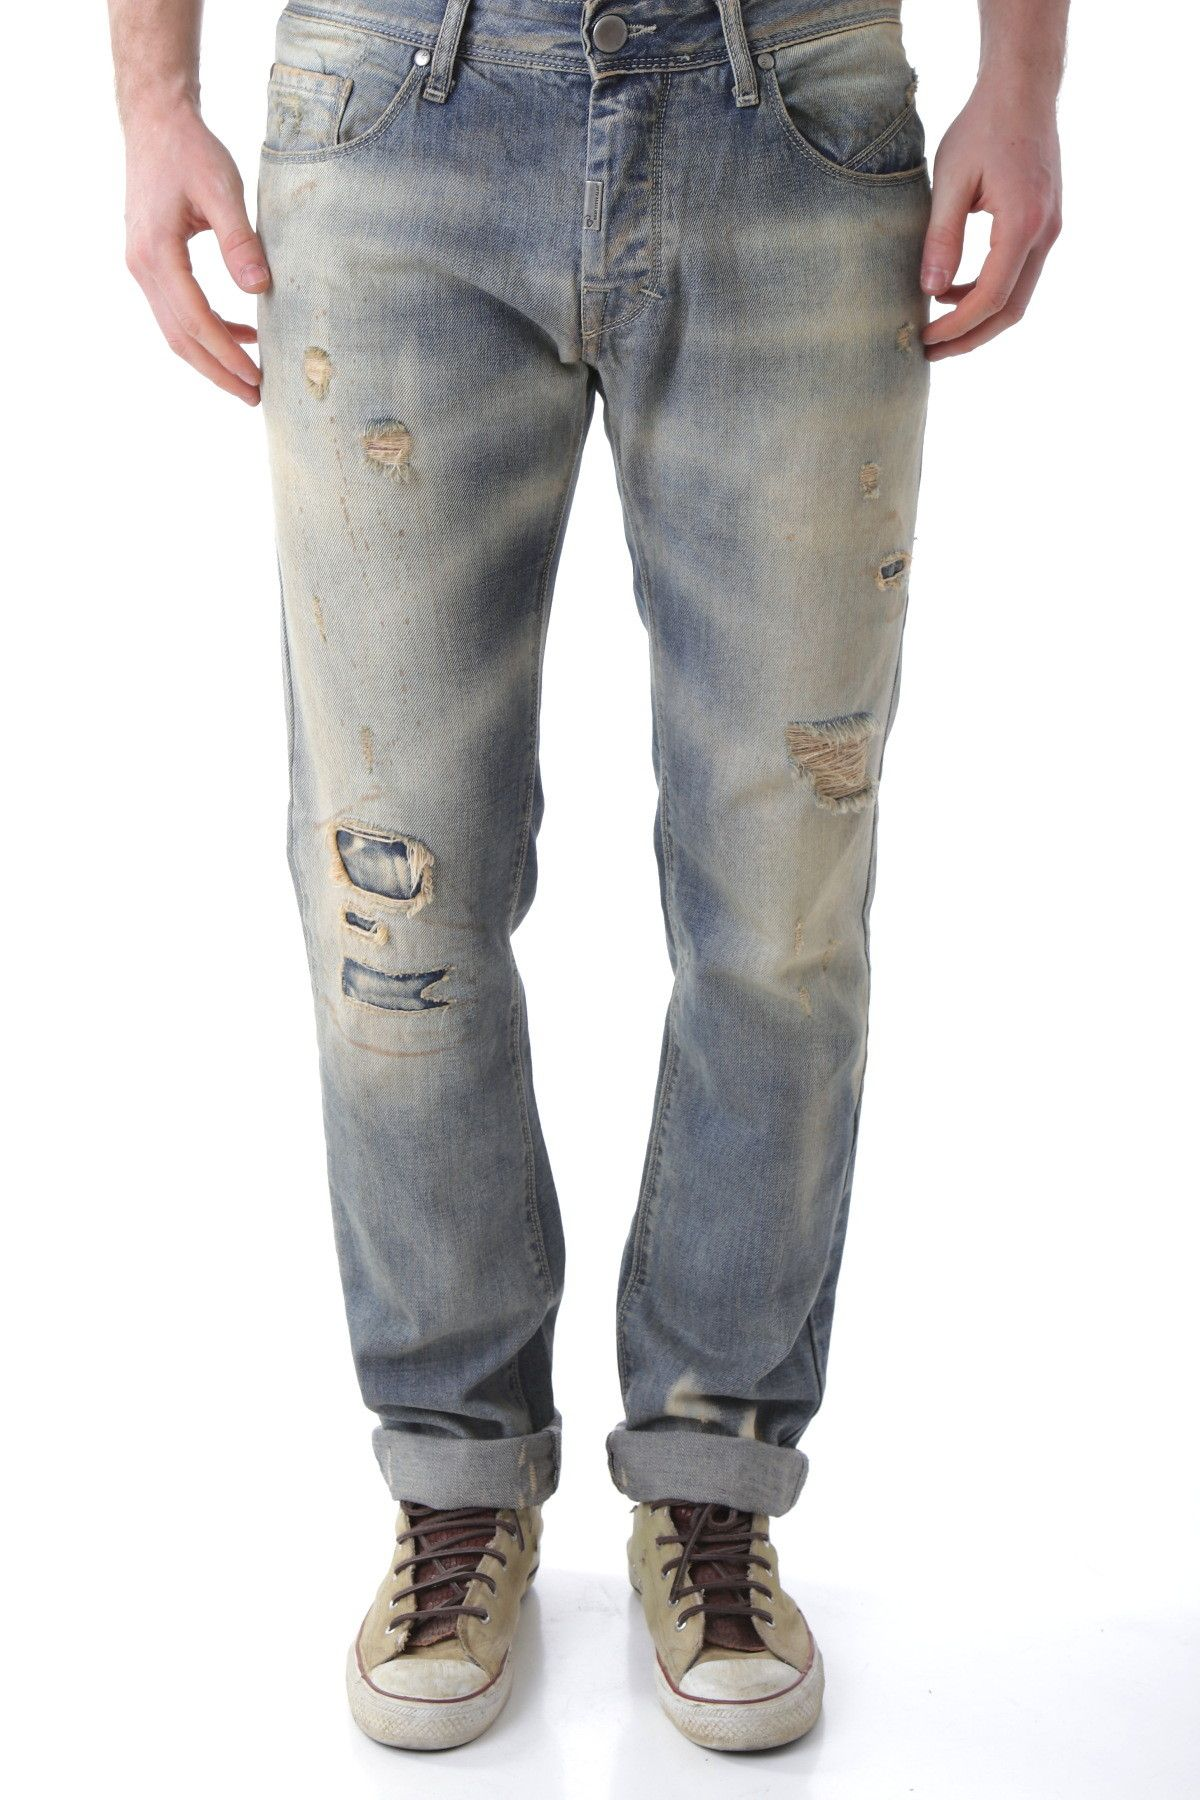 Bray Steve Alan Men's Jeans In Blue